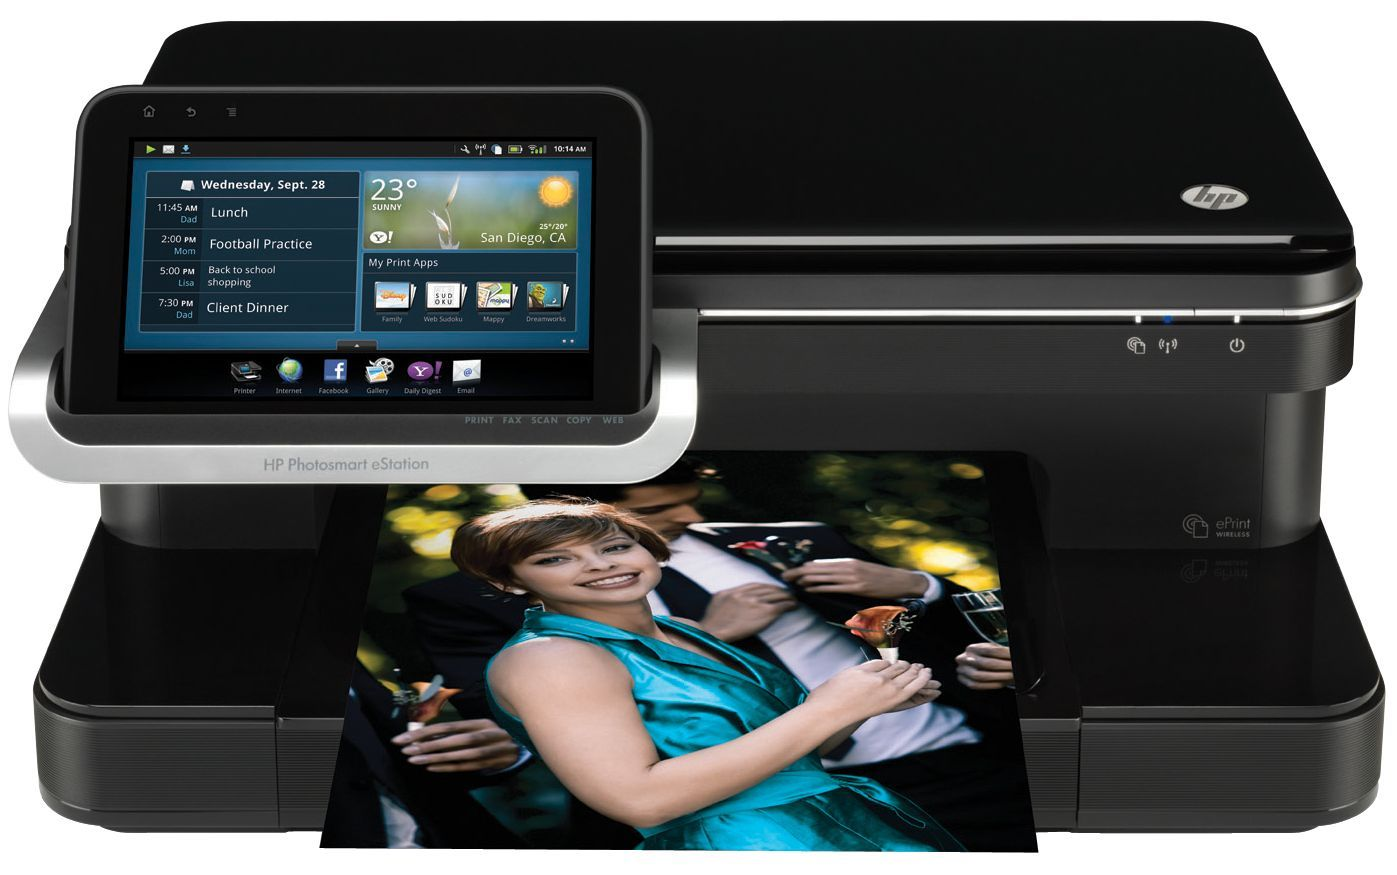 Hp photosmart d7560 printer best buy 36 Great Scrapbook